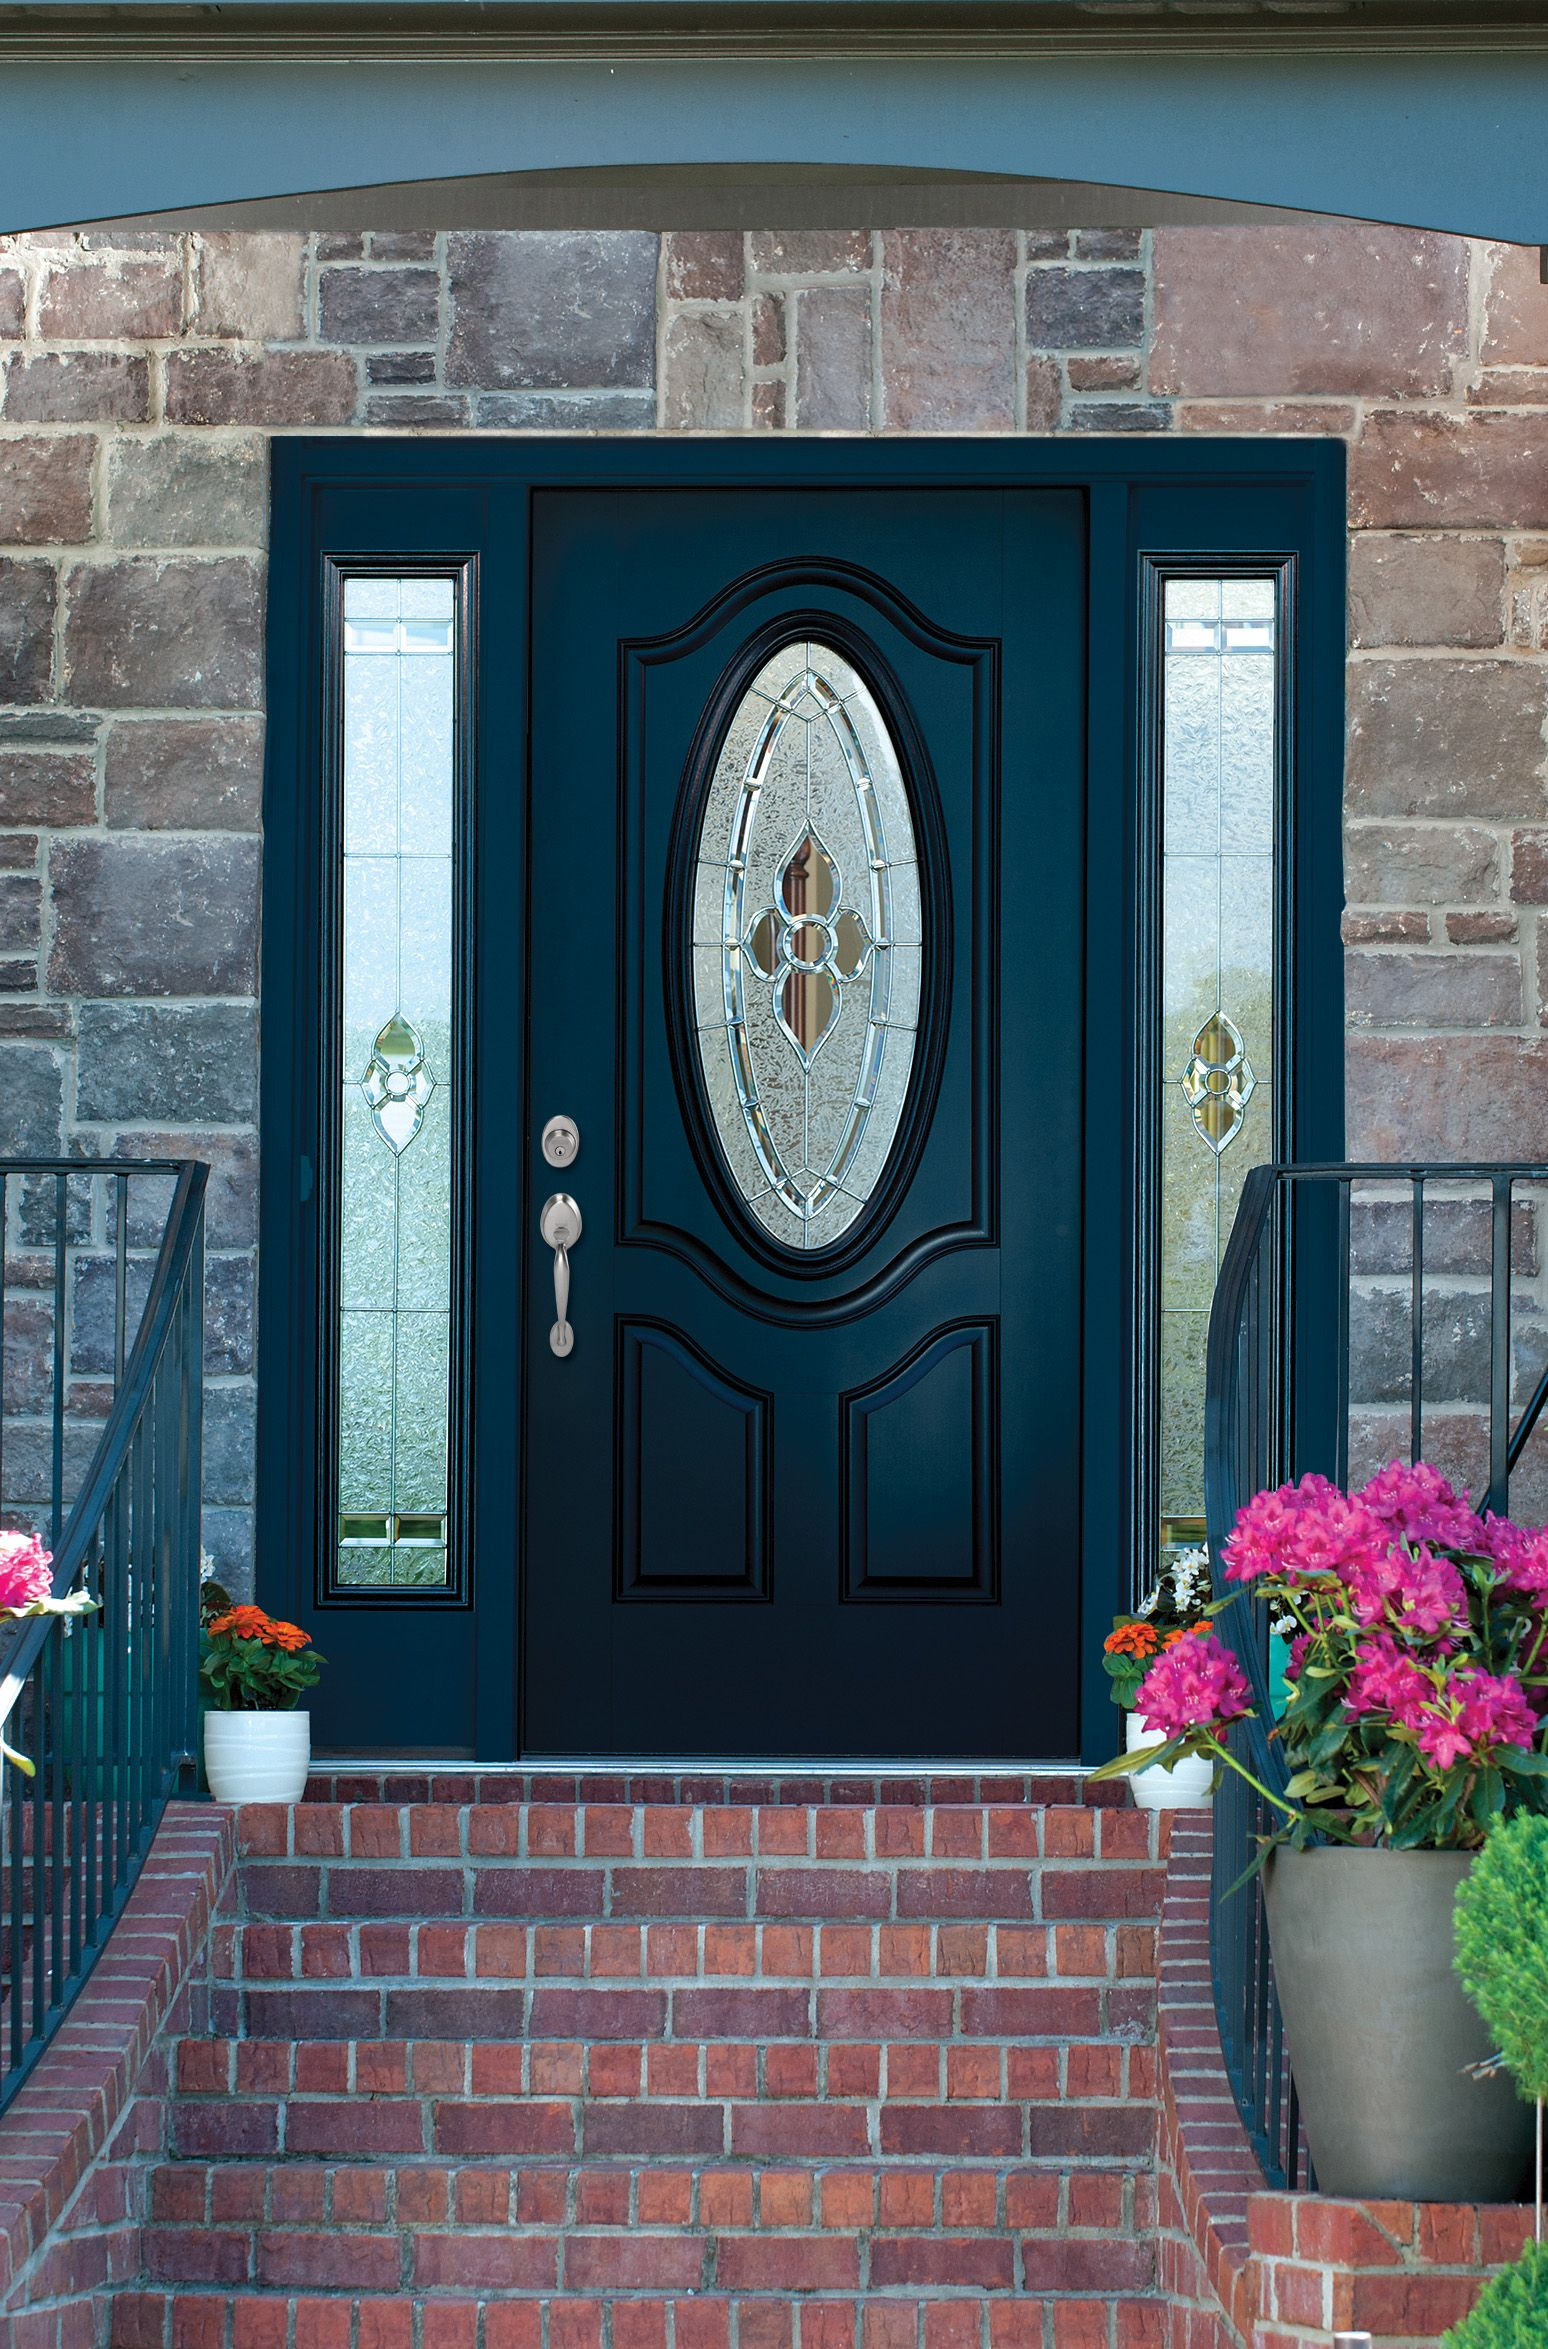 Superior Make Your Entrance Way Grand With This MAXIMA Door! 2 Panel 3/4 Oval